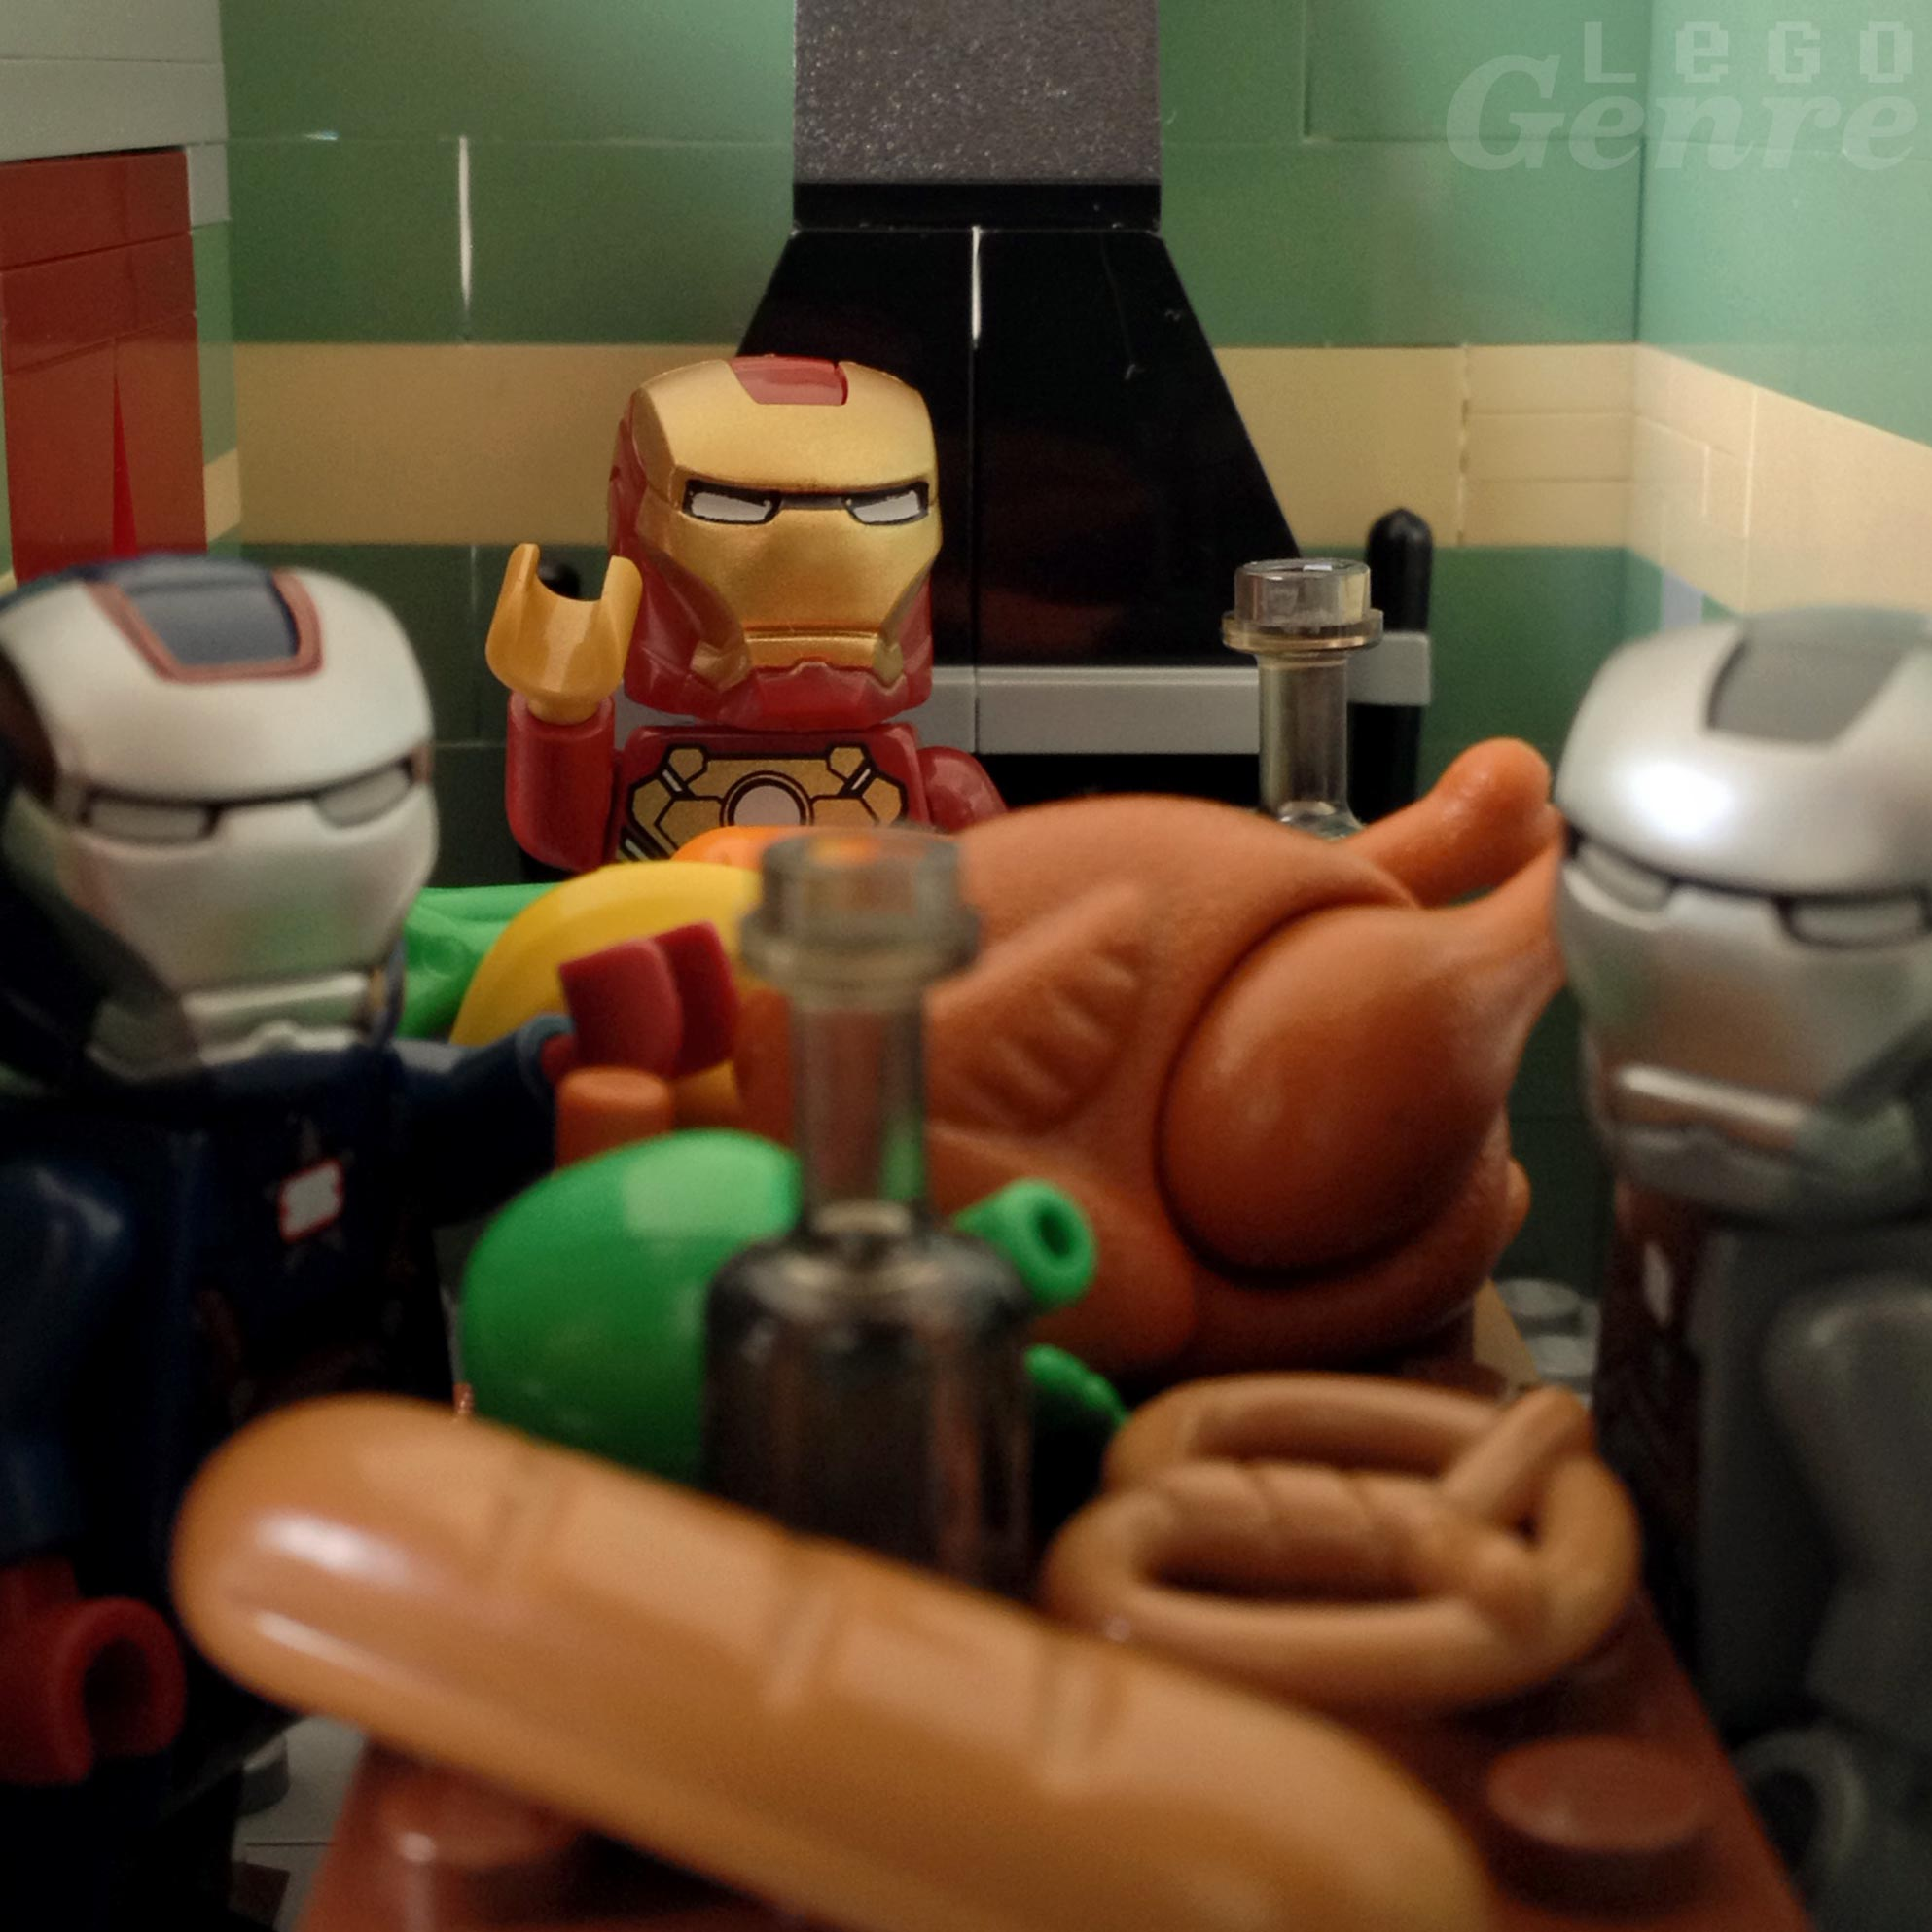 LegoGenre 00334: An Iron Man Thanksgiving